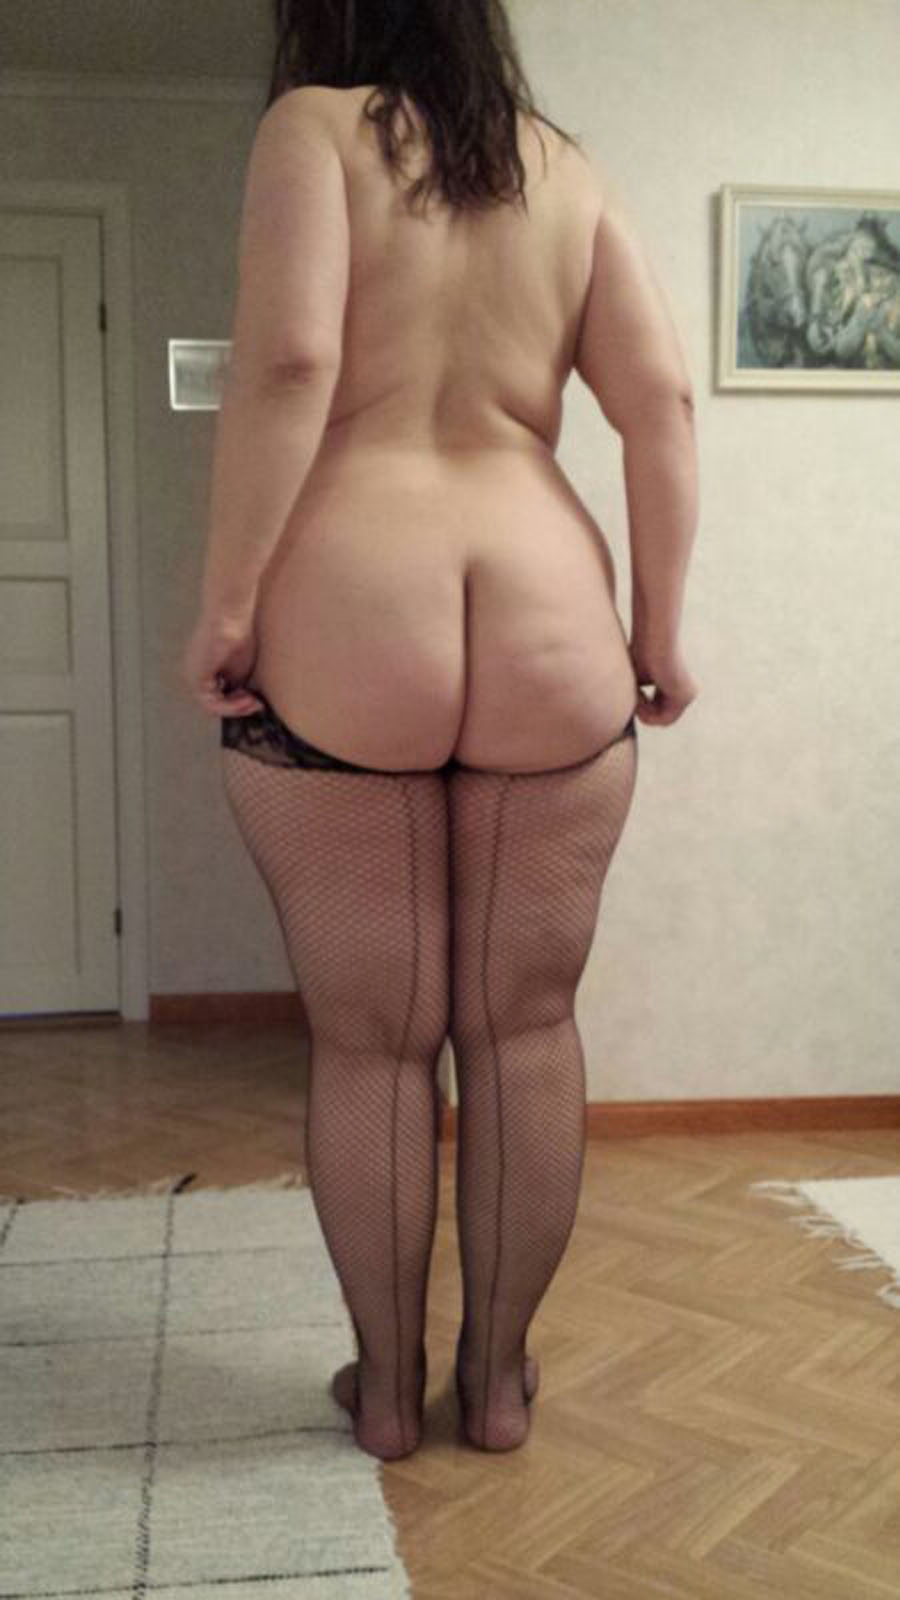 Nude Girls With Fat Asses